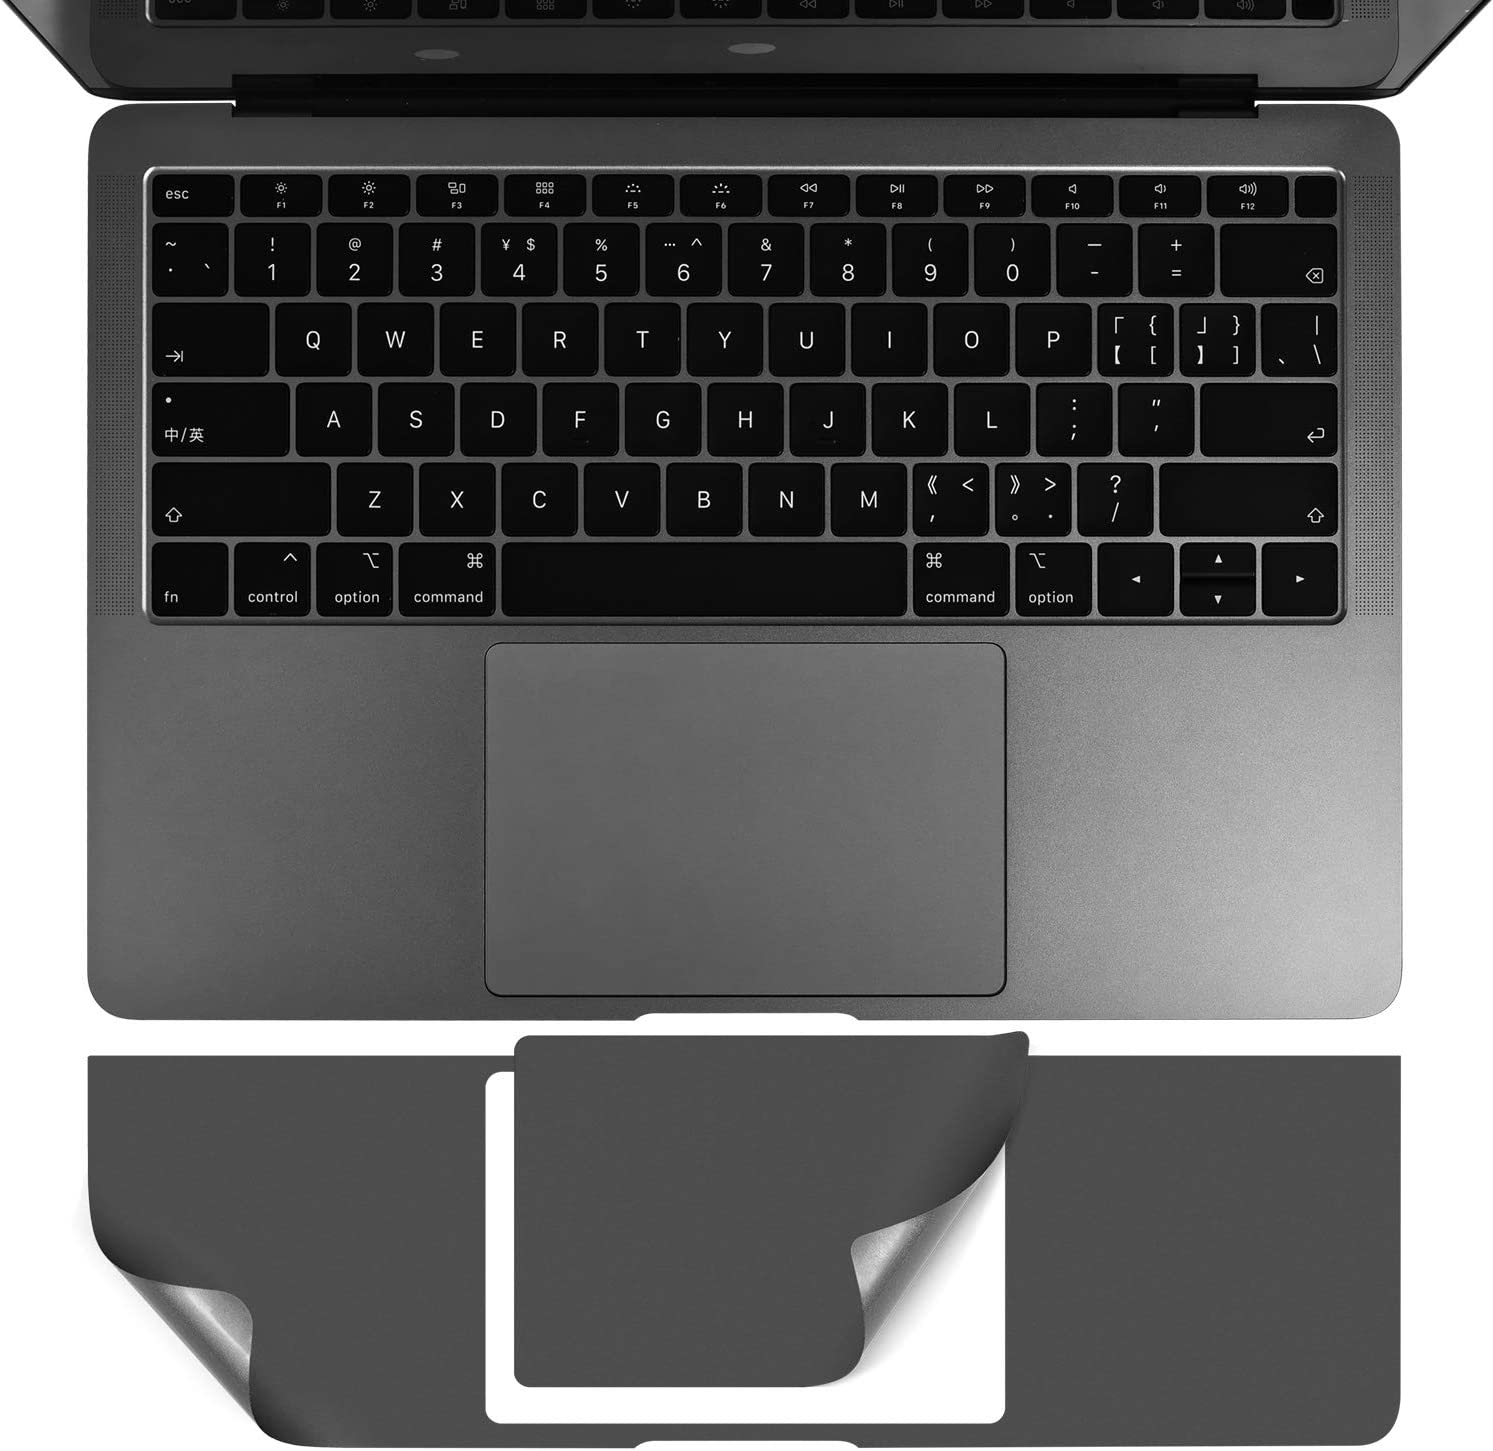 MacBook Air 13 inch Palm Rest Cover, CASEBUY PalmRest Skin with Trackpad Protector for MacBook Air 13-inch Model A2179 A1932 2020 2019 2018 Protective Vinyl Decal Cover Sticker, Space Grey